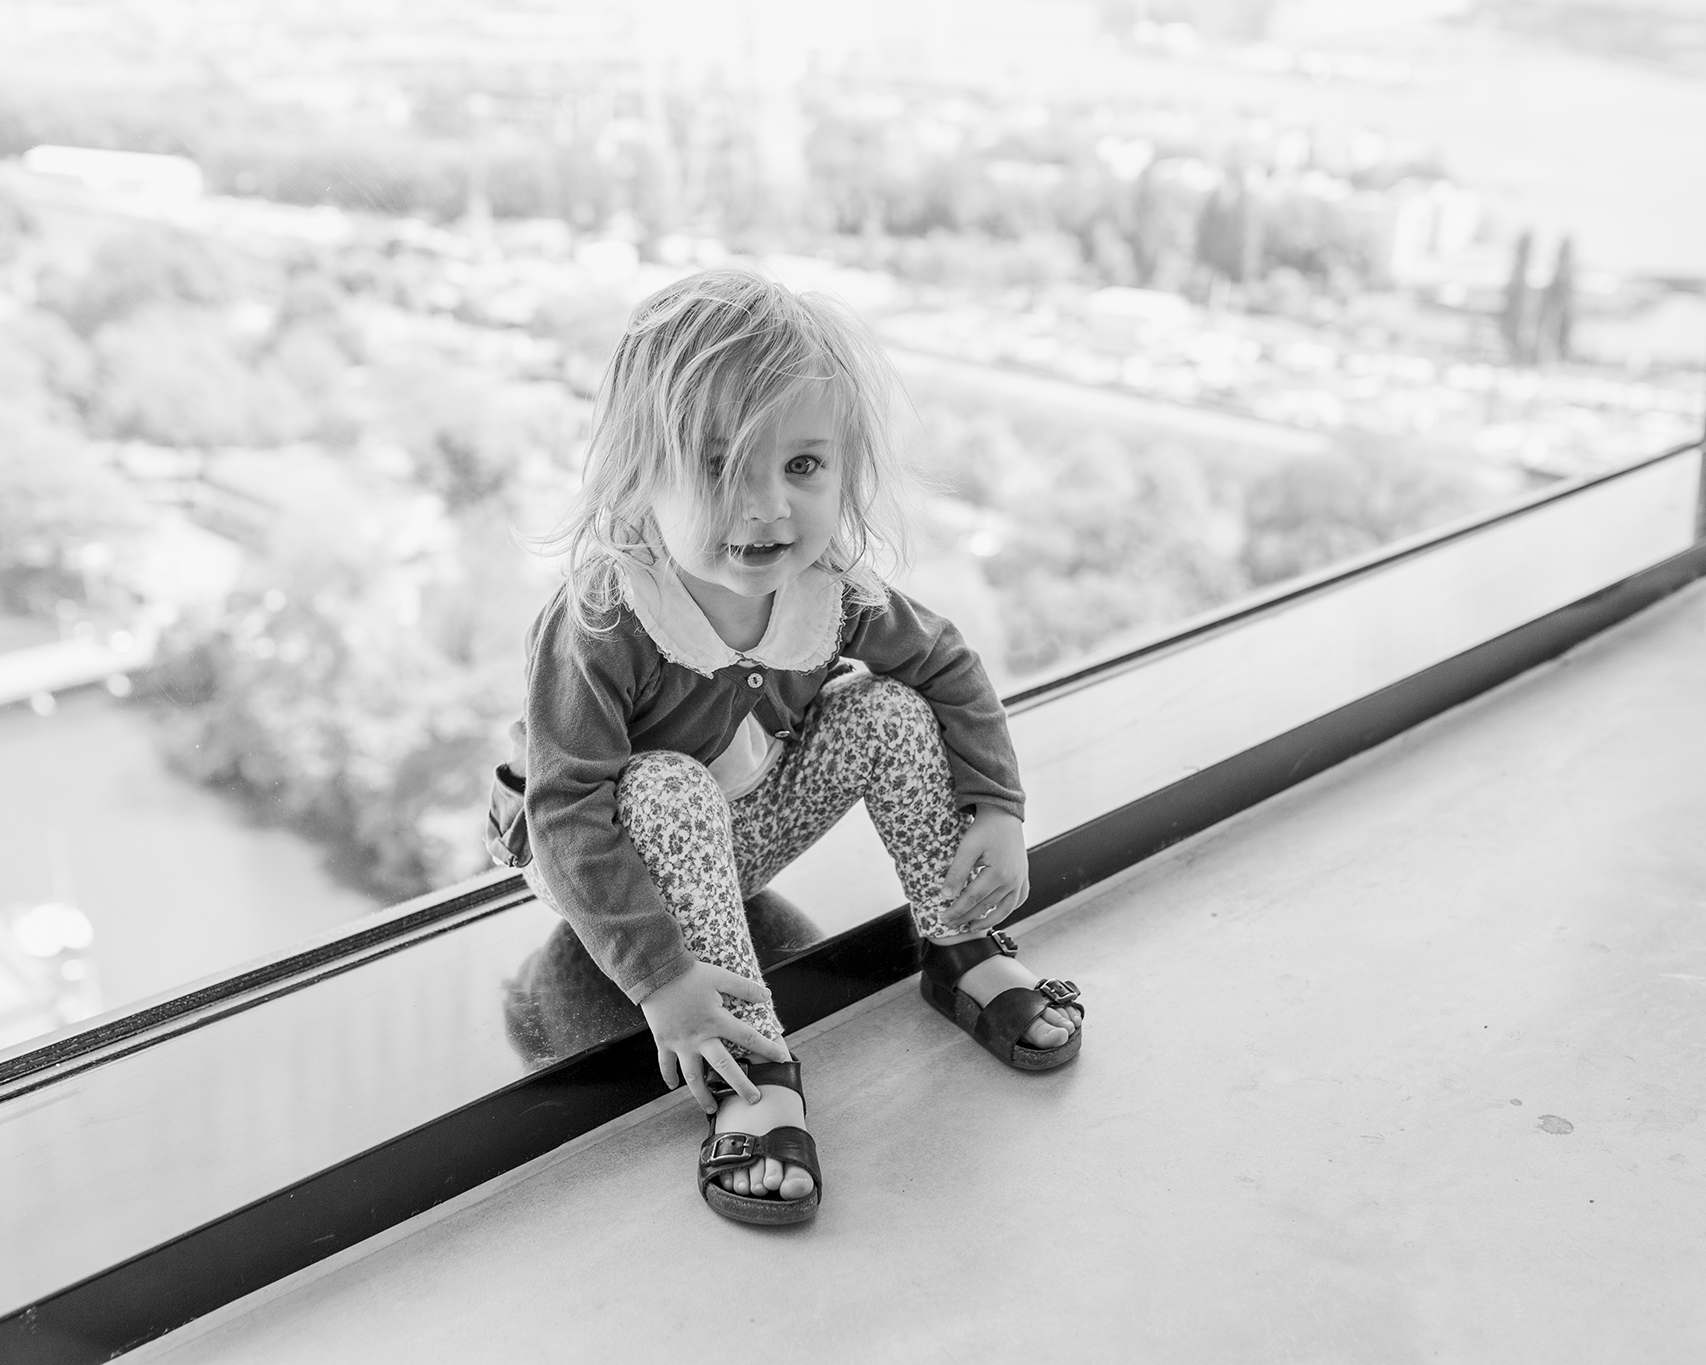 ADAM-Lookout-360-view-bw2.jpg